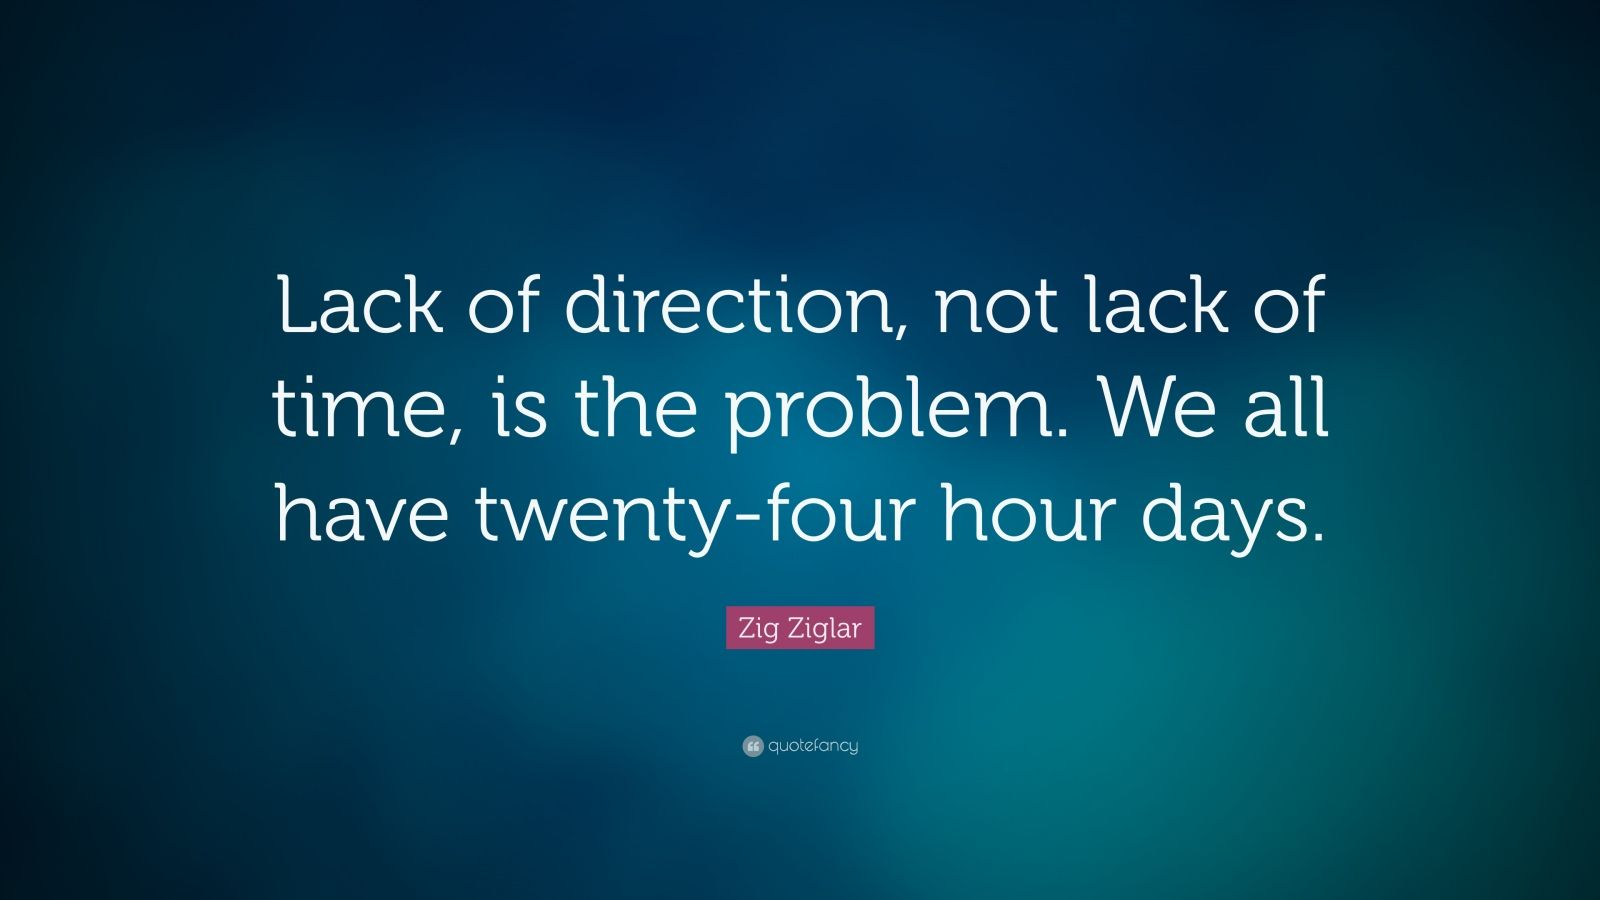 zig ziglar quote lack of direction not lack of time is